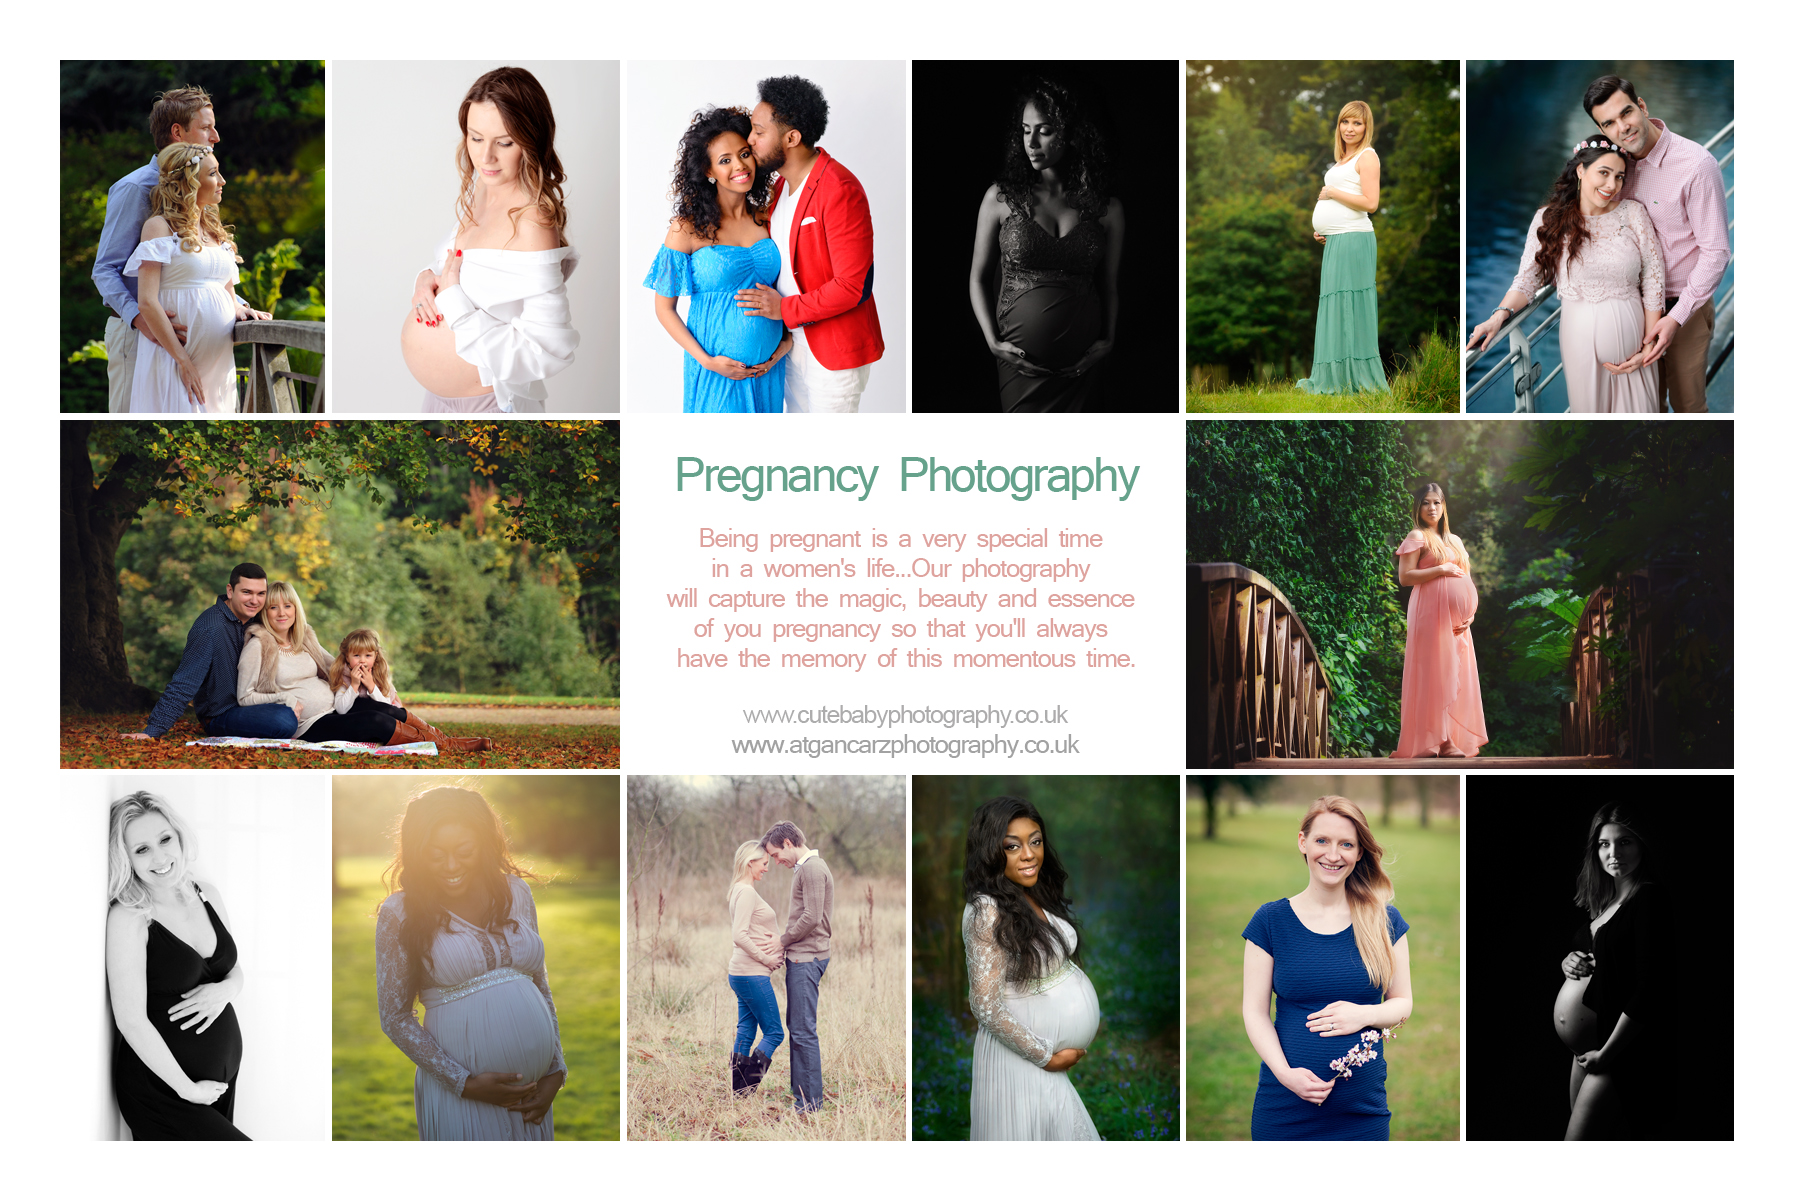 Pregnancy Photography Packages, A&T Gancarz Photography